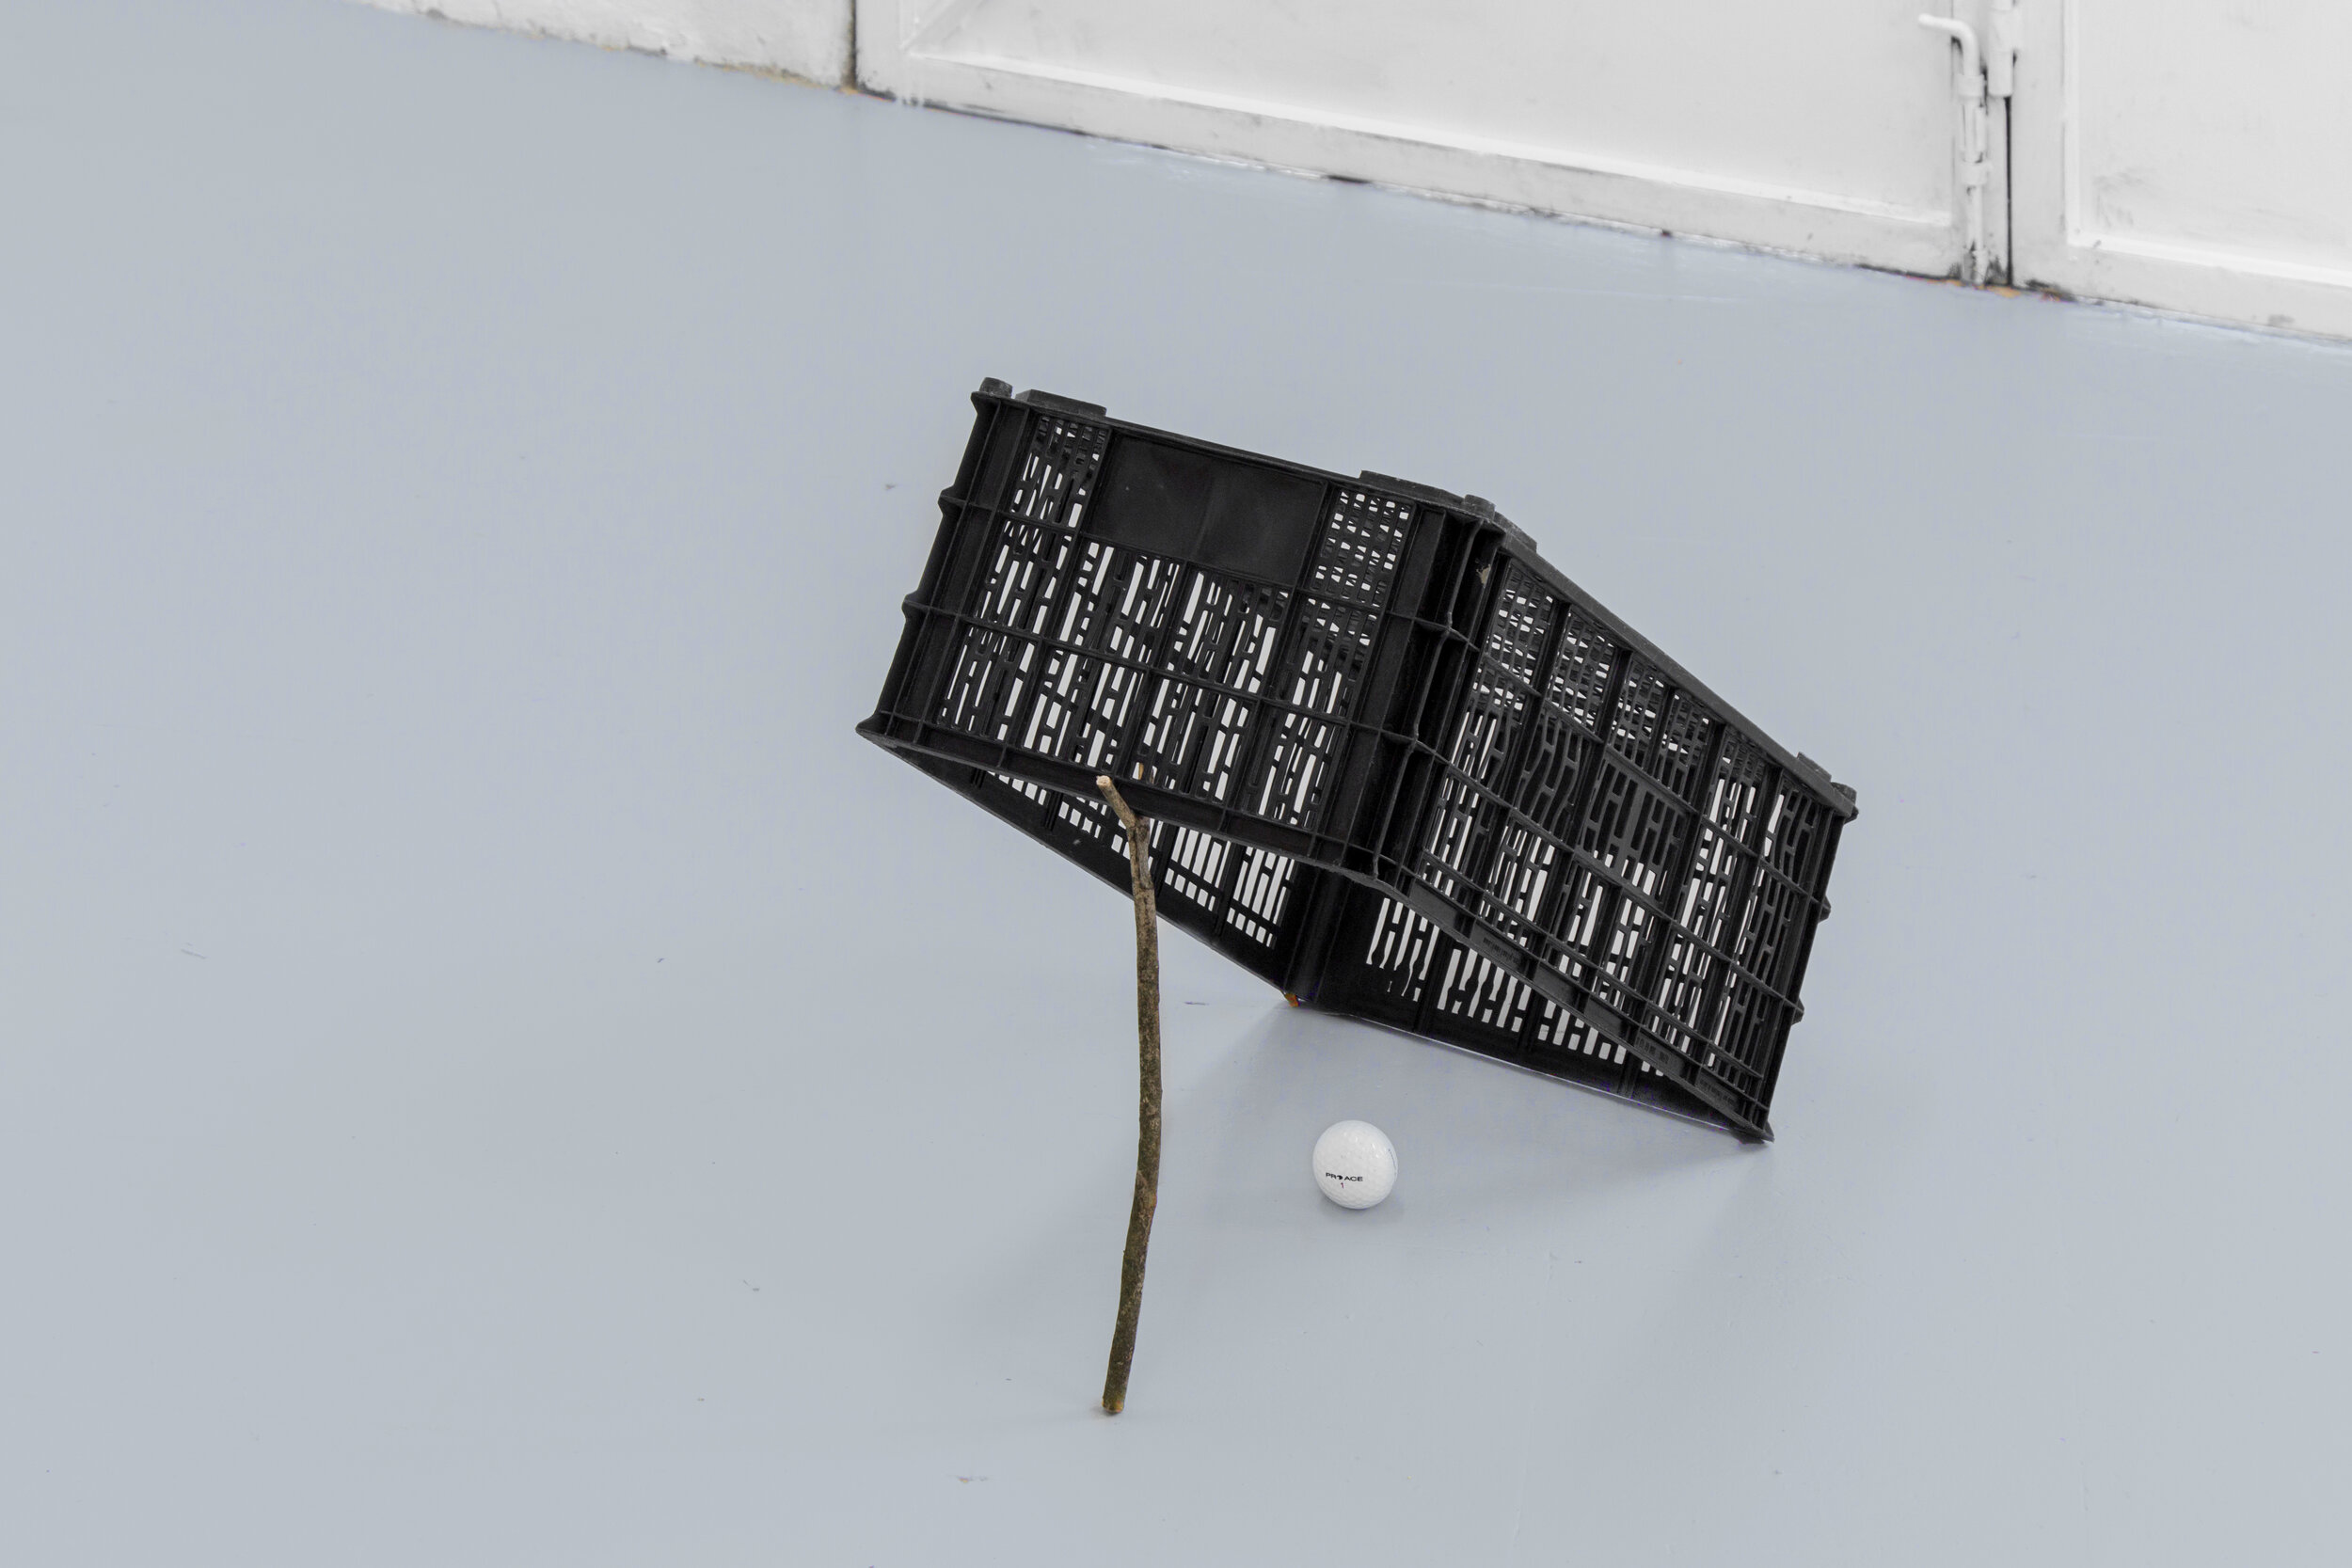 Armadilha para ricos,  2019 Plastic box, wood stick and golf ball 45 x 45 x 30 cm